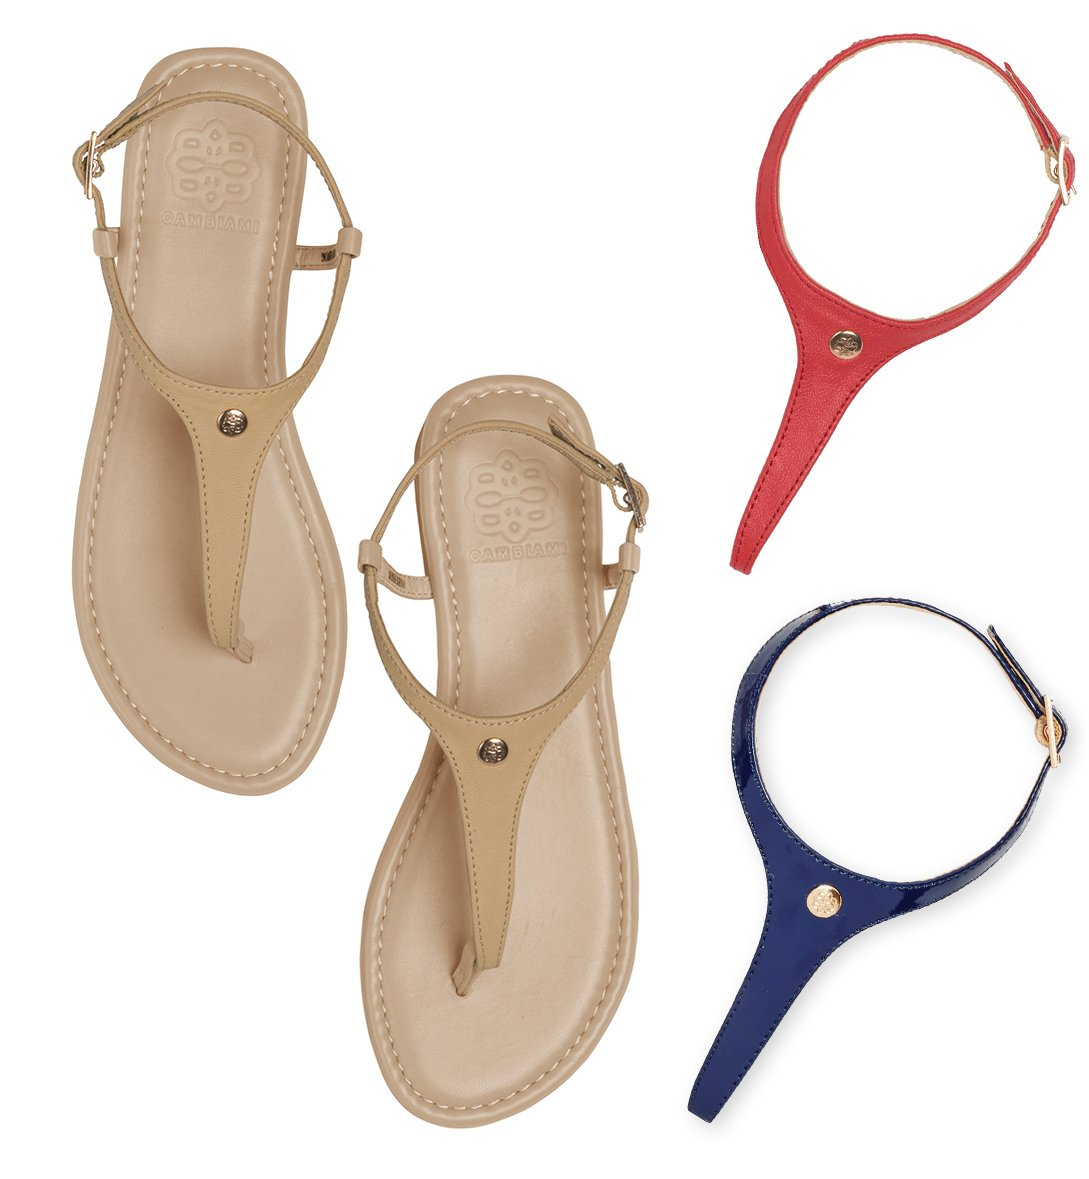 Cambiami - Leather T-strap Slingback Flat Sandals - Includes THREE Interchangeable Strap Sets (Tan, Red, & Navy) & Nude Sole - Stylish & Comfortable - Women's Size 8 by CAMBIAMI